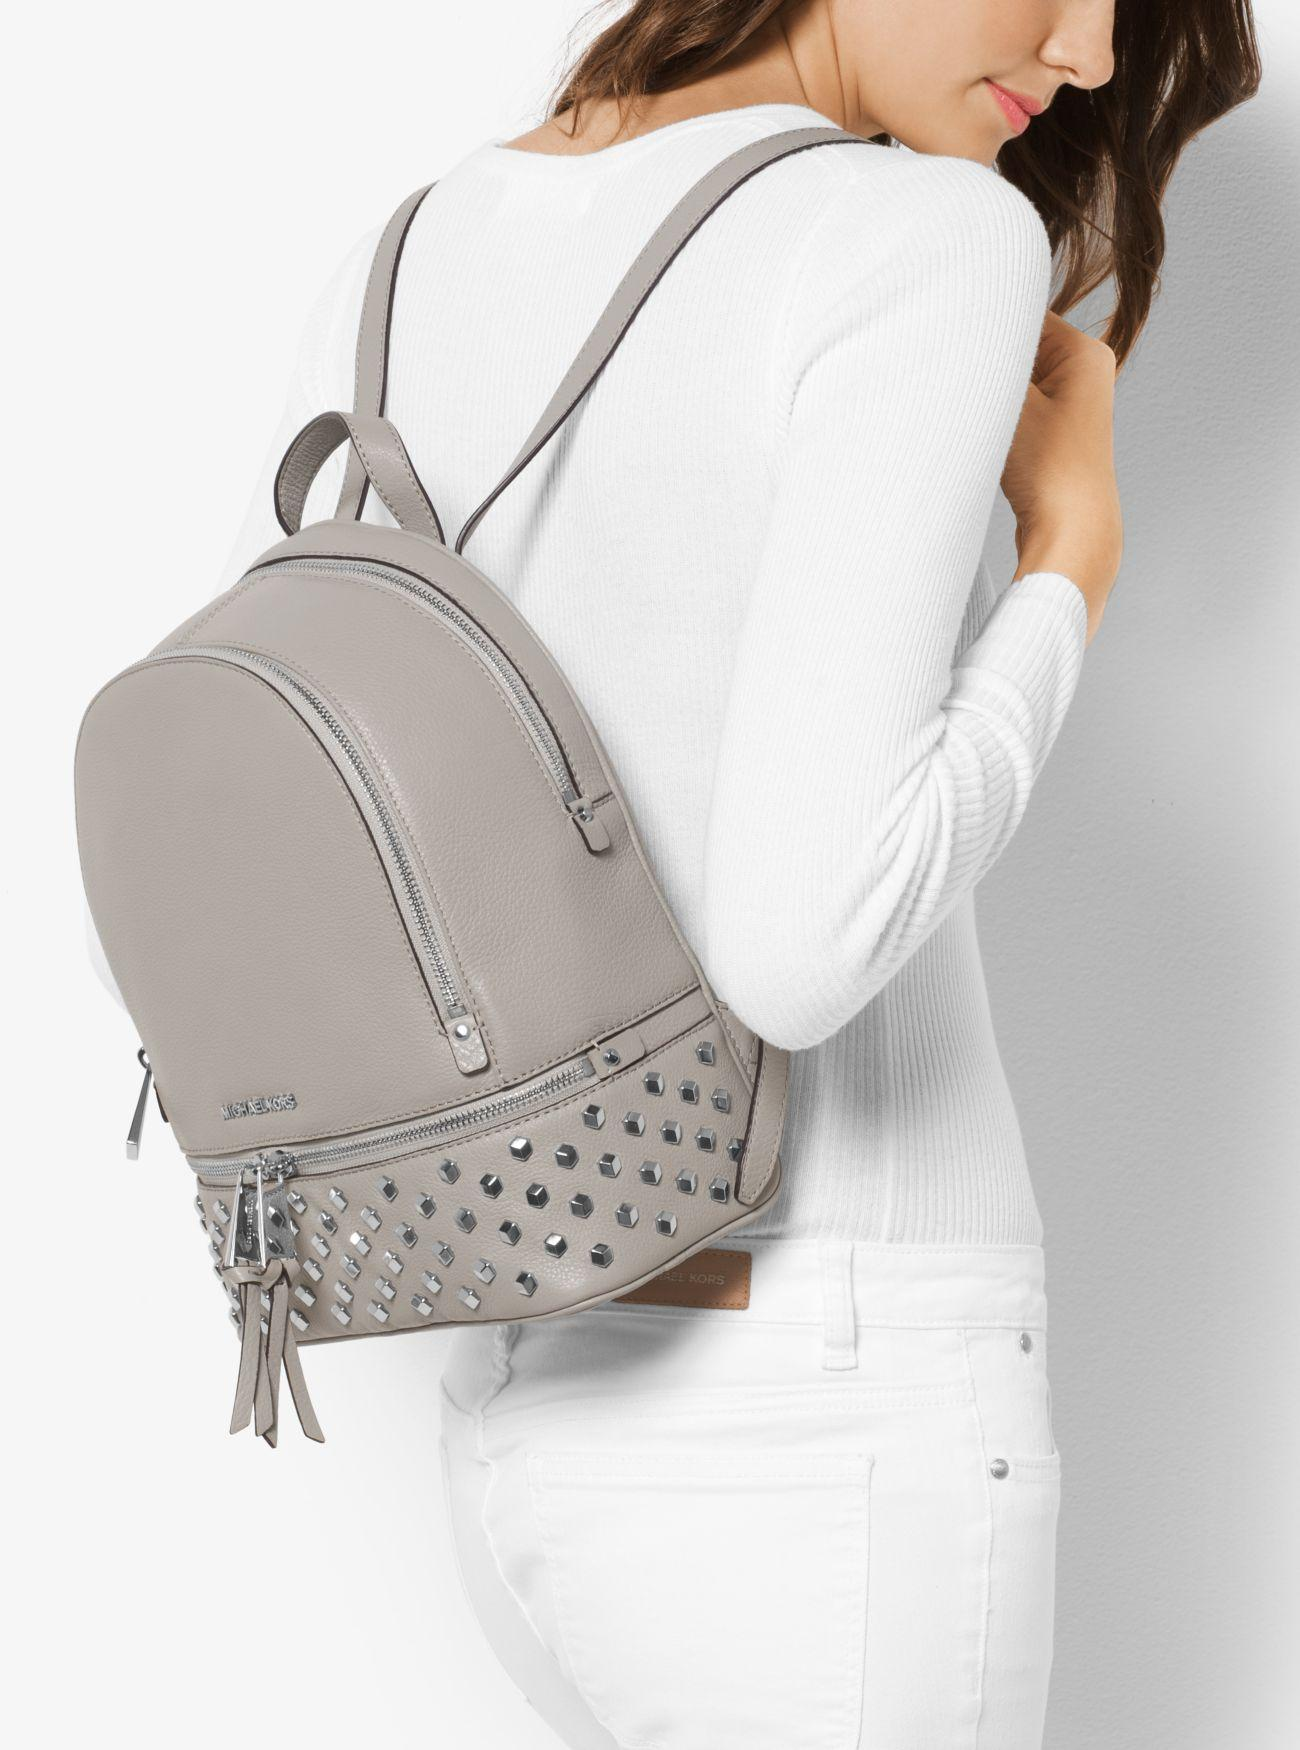 1497e7306528 Michael Kors Rhea Medium Studded Leather Backpack in Gray - Lyst